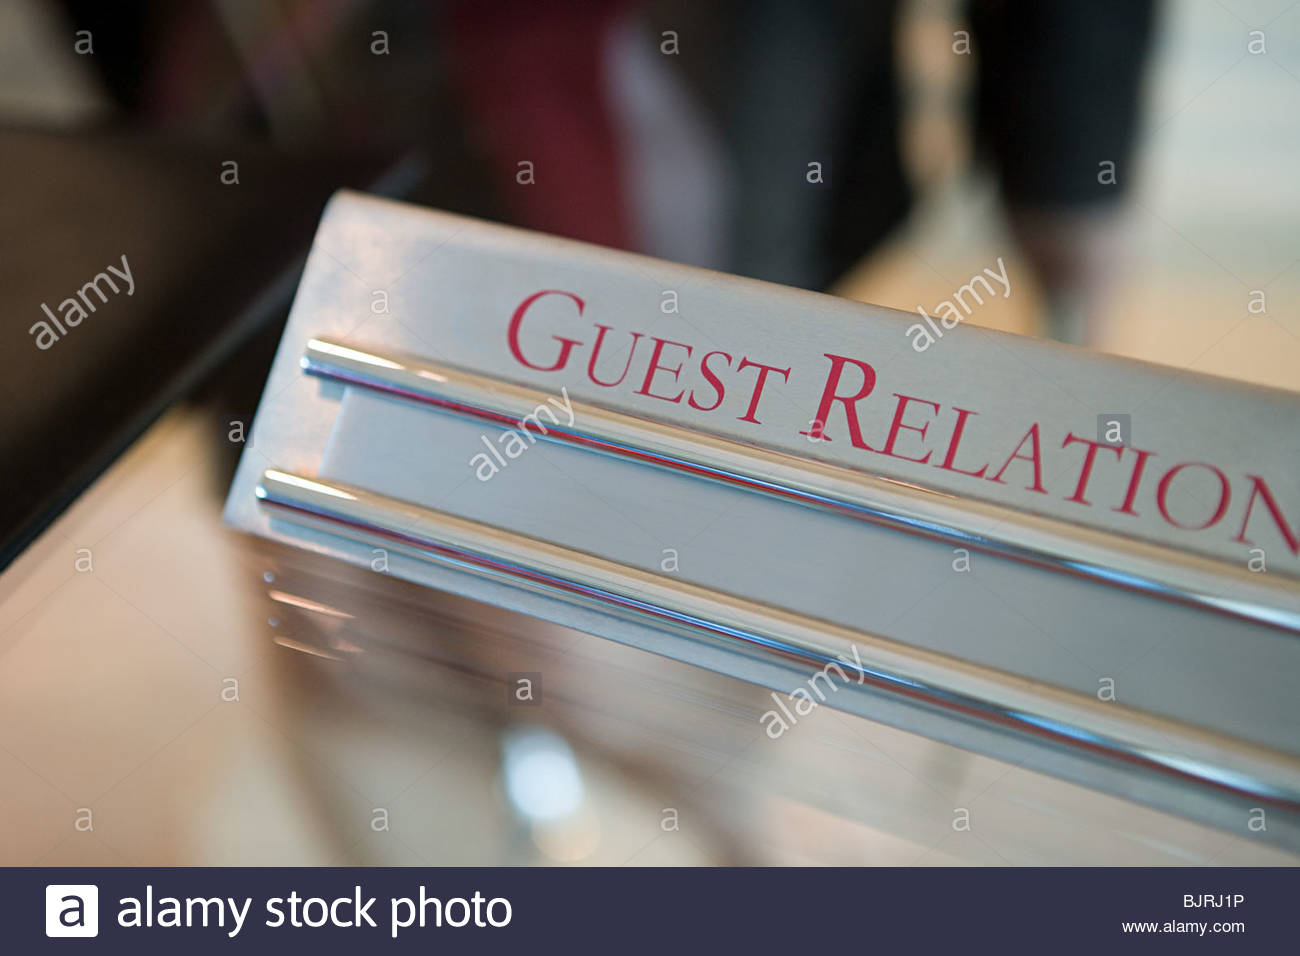 Customer relations sign - Stock Image